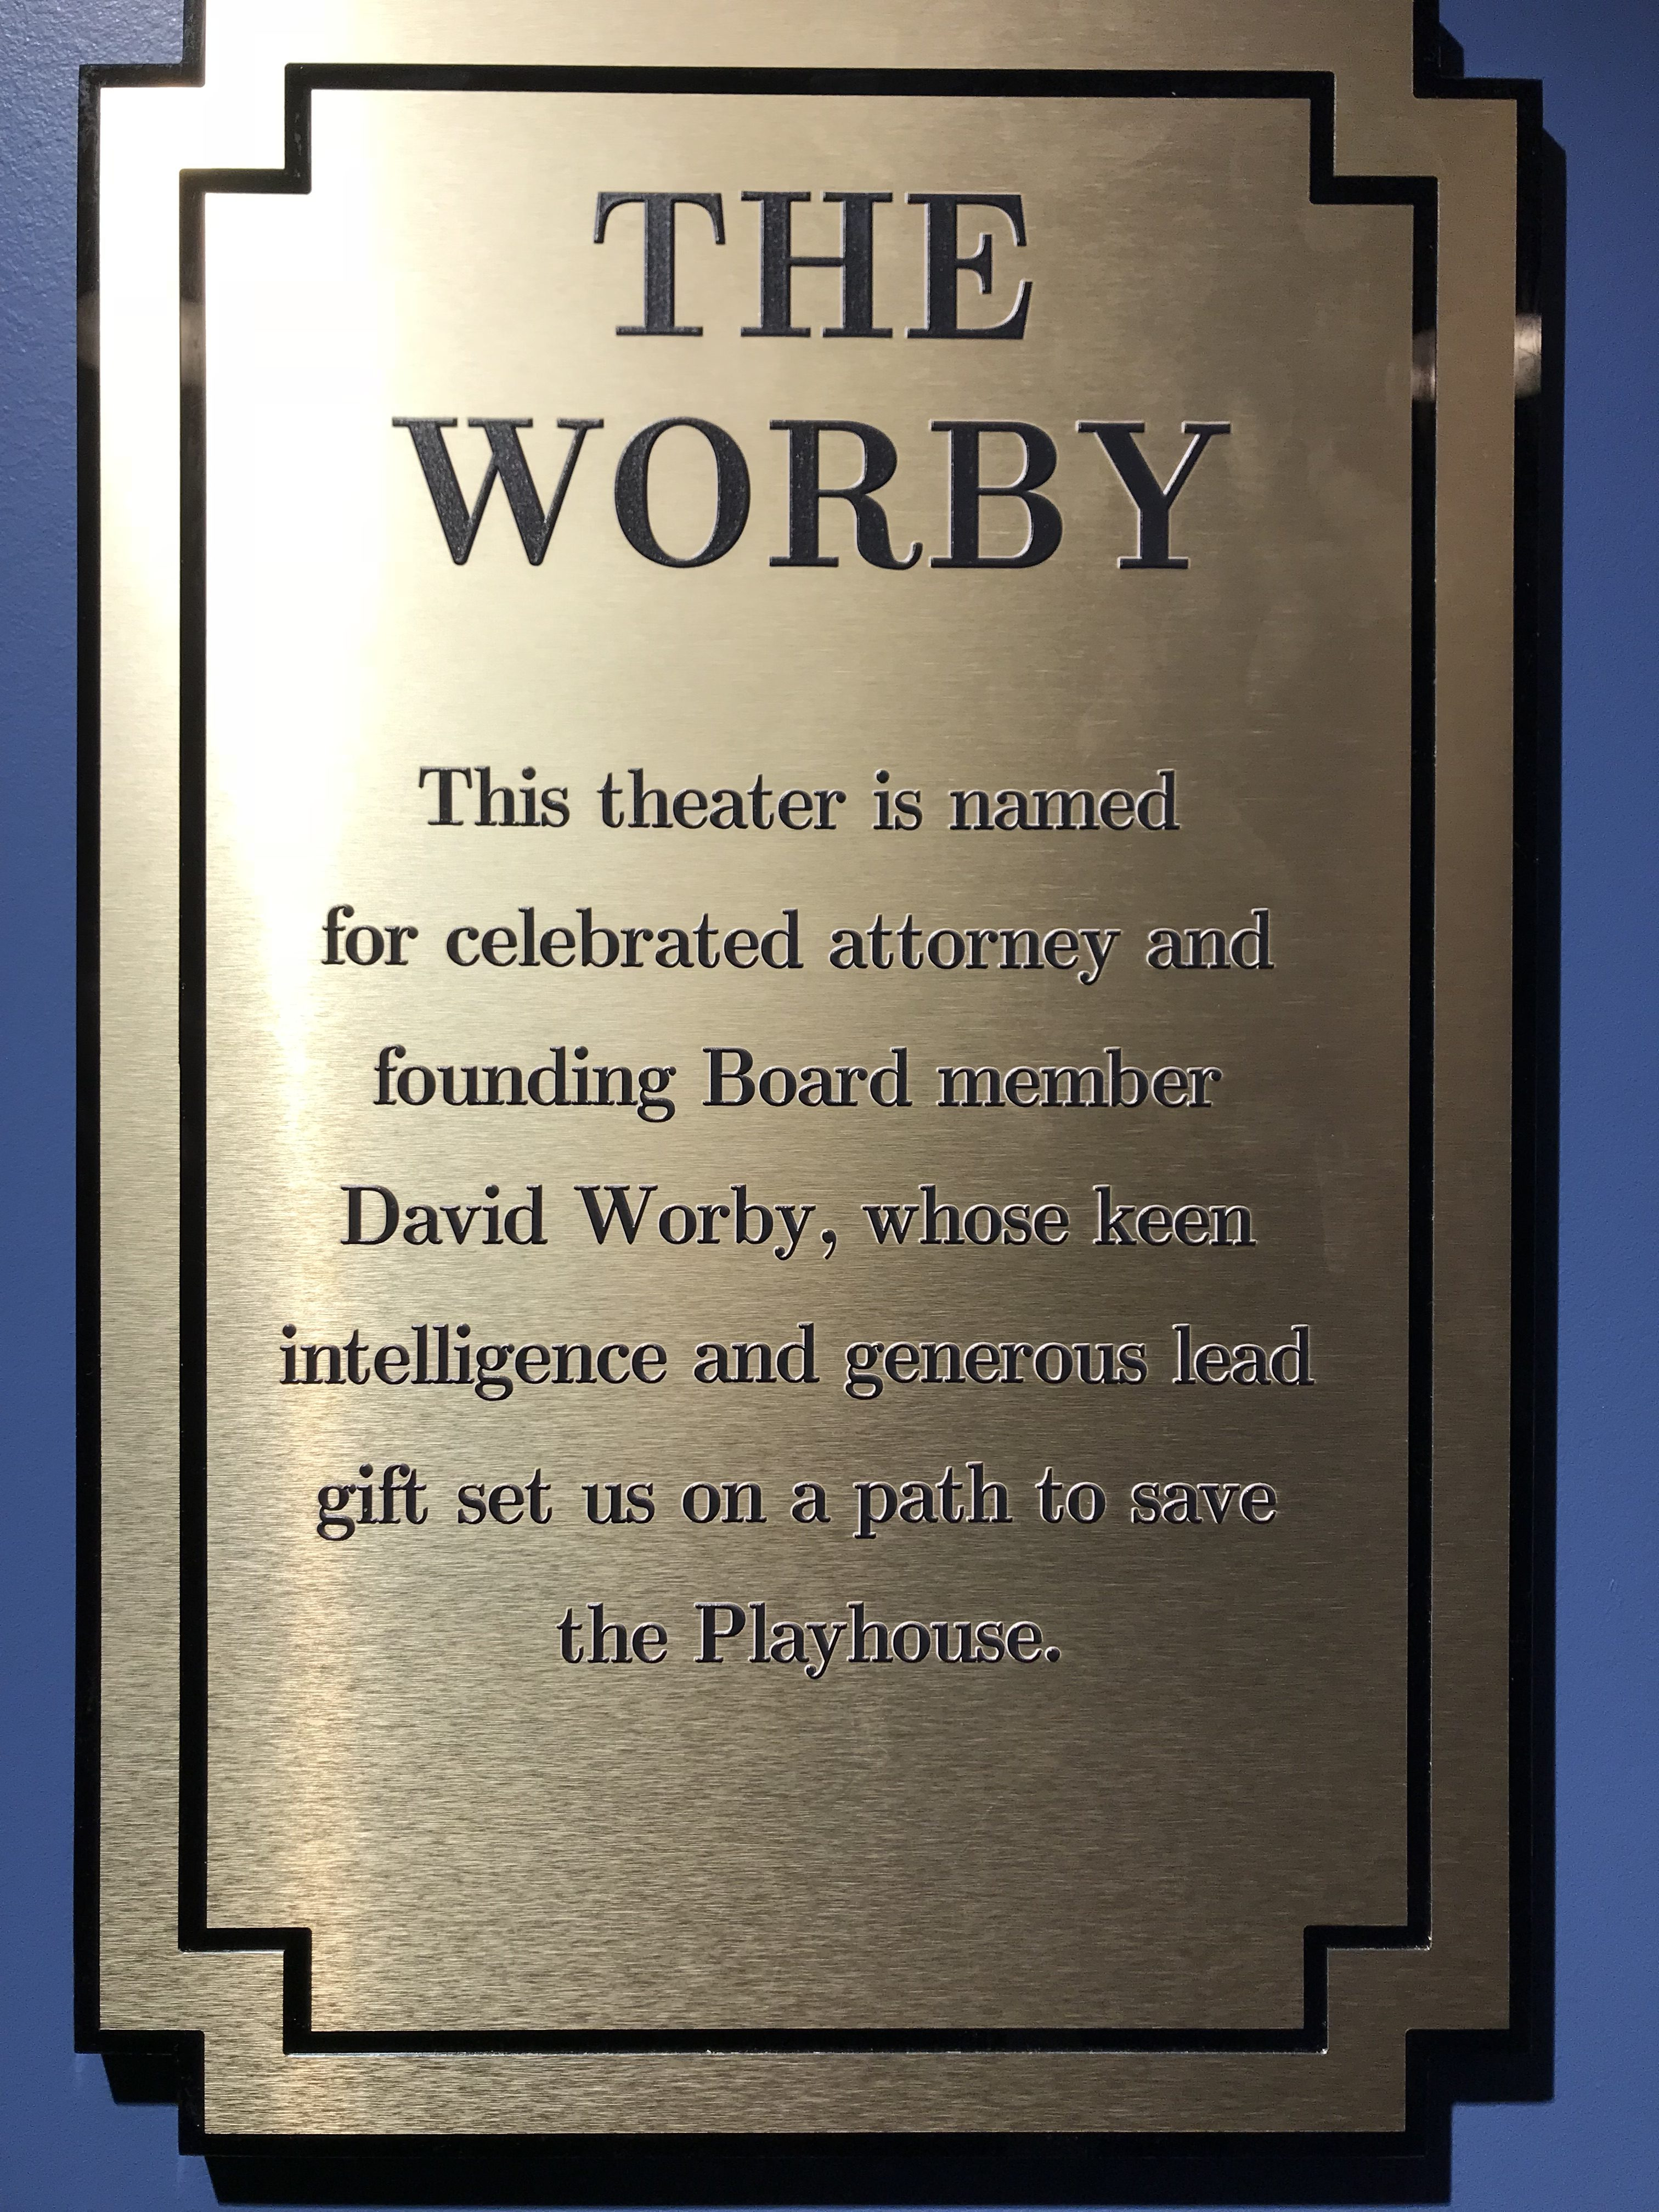 The Worby